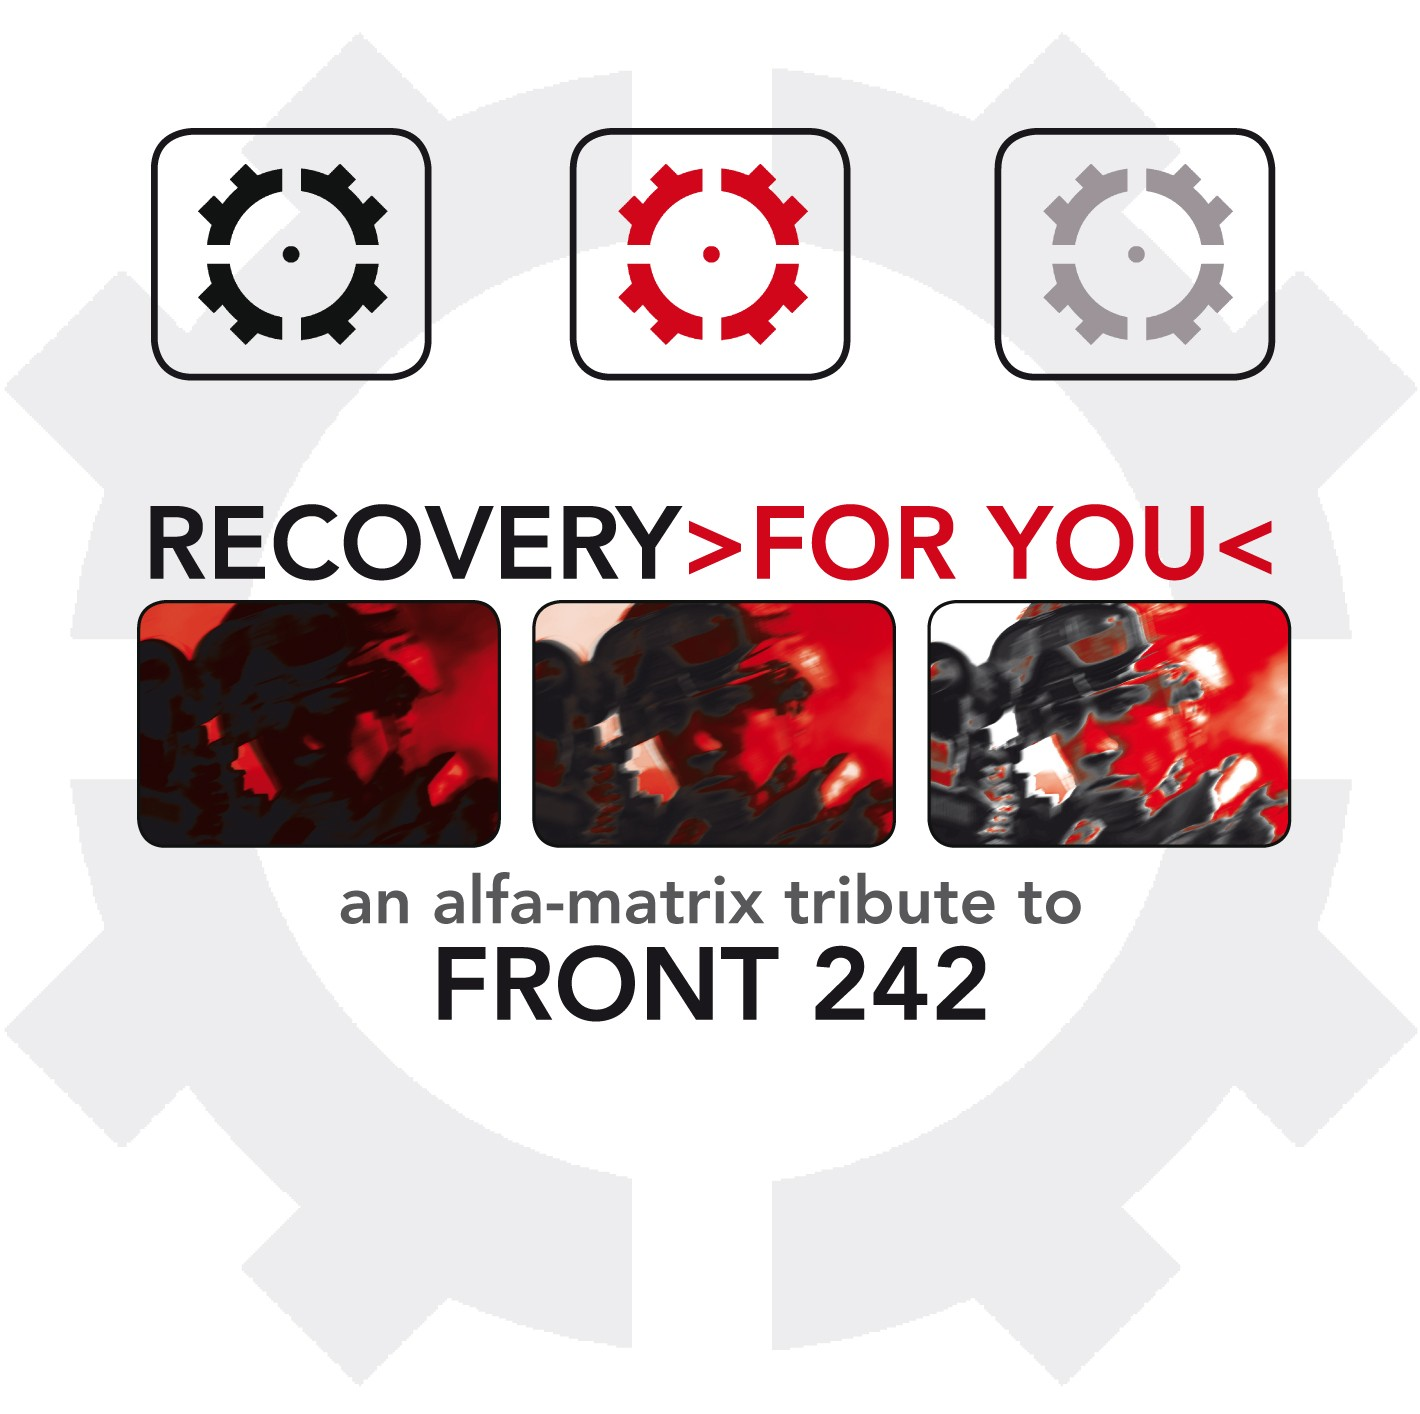 V.A. - Recovery >for you< - Tribute to Front 242 - 2CD